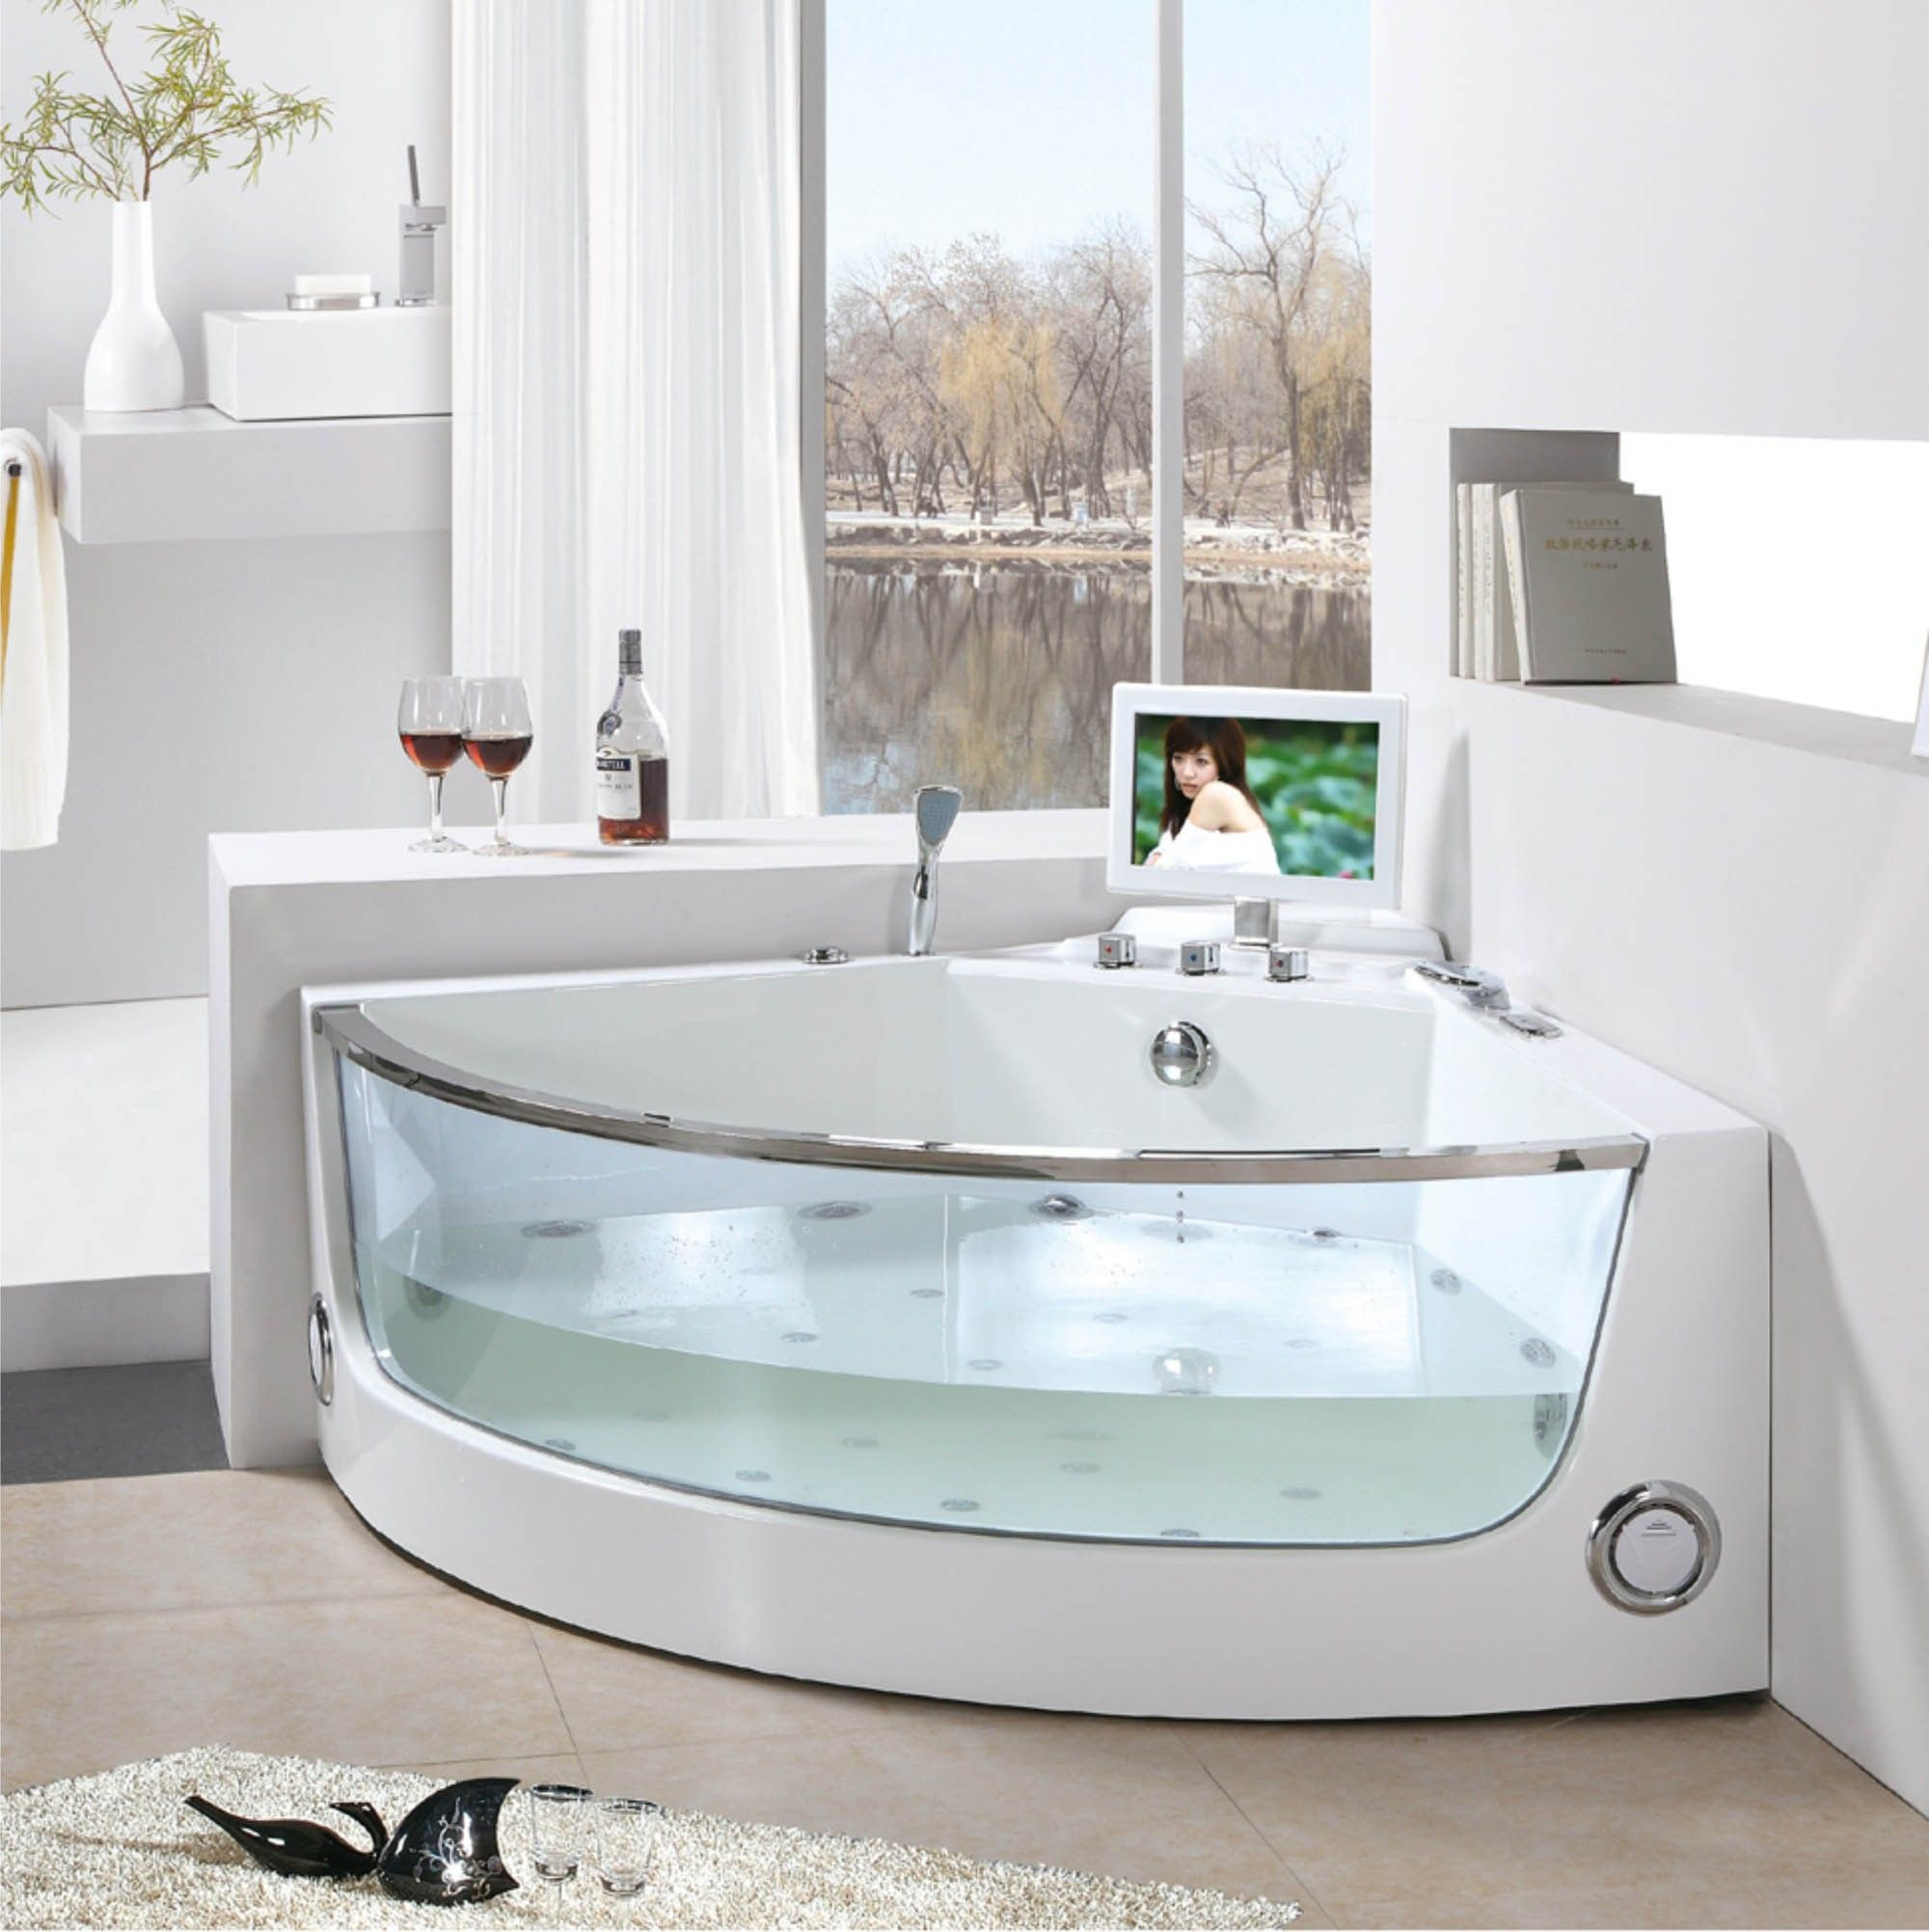 Breathtaking Soaking Tubs Models And Type Ideas For Bathroom Tubs Furniture New Bathroom Styles